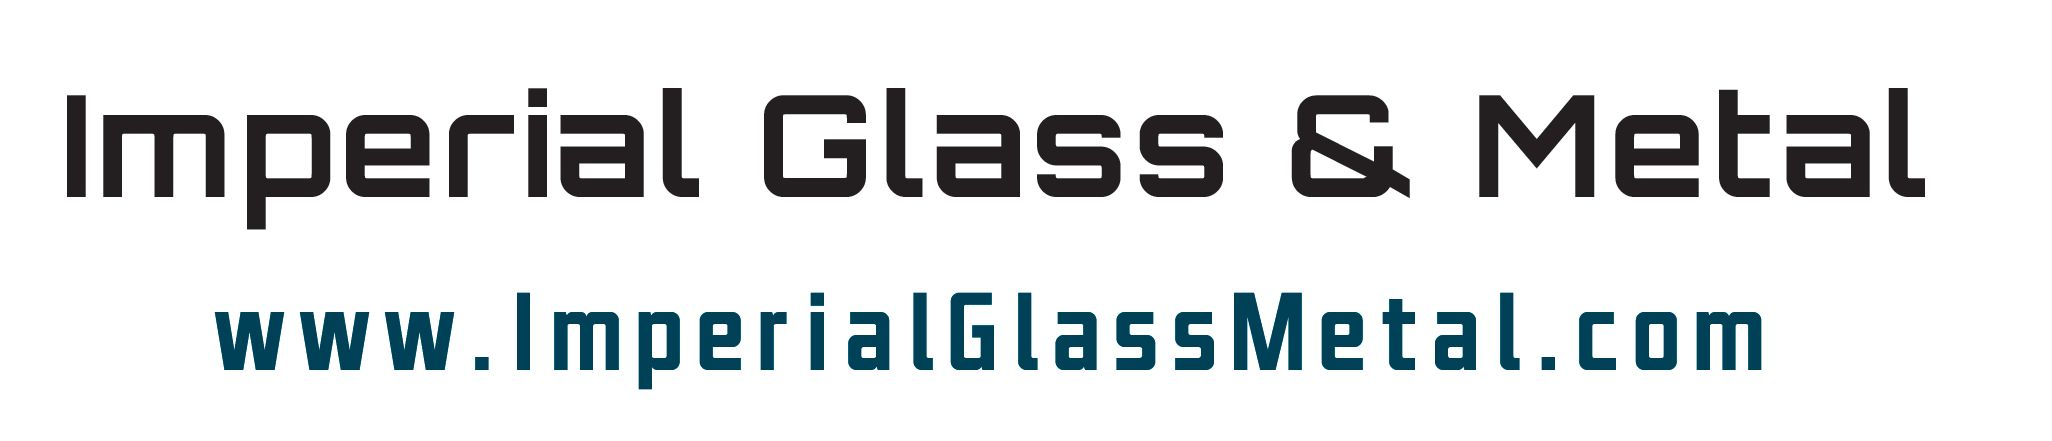 Imperial Glass & Metal